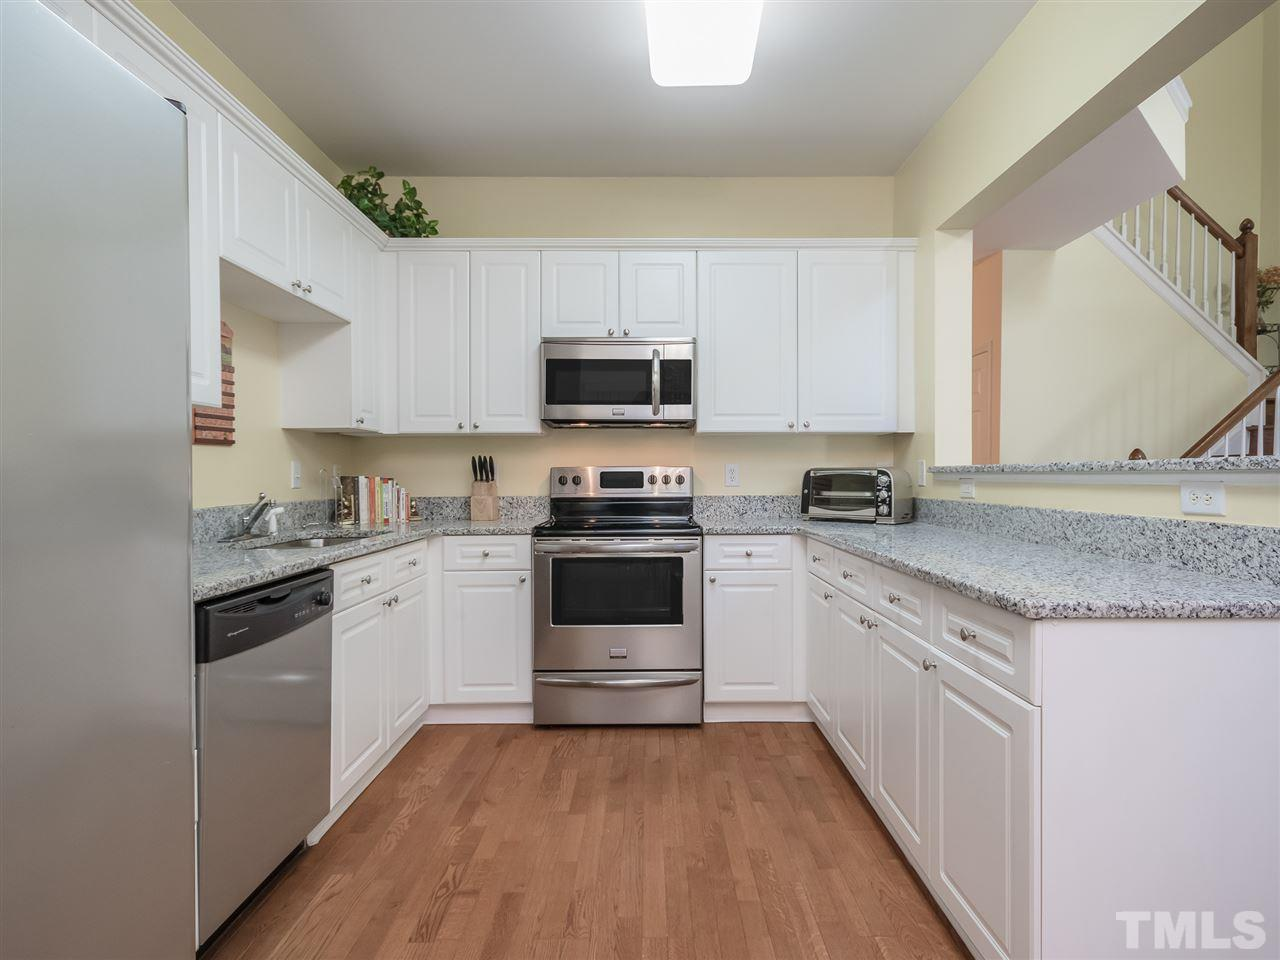 Bright and cheery kitchen with white cabinets! GRANITE COUNTERS INSTALLED! MICROWAVE JUST REPLACED! MUST SEE!!! SO BEAUTIFUL!